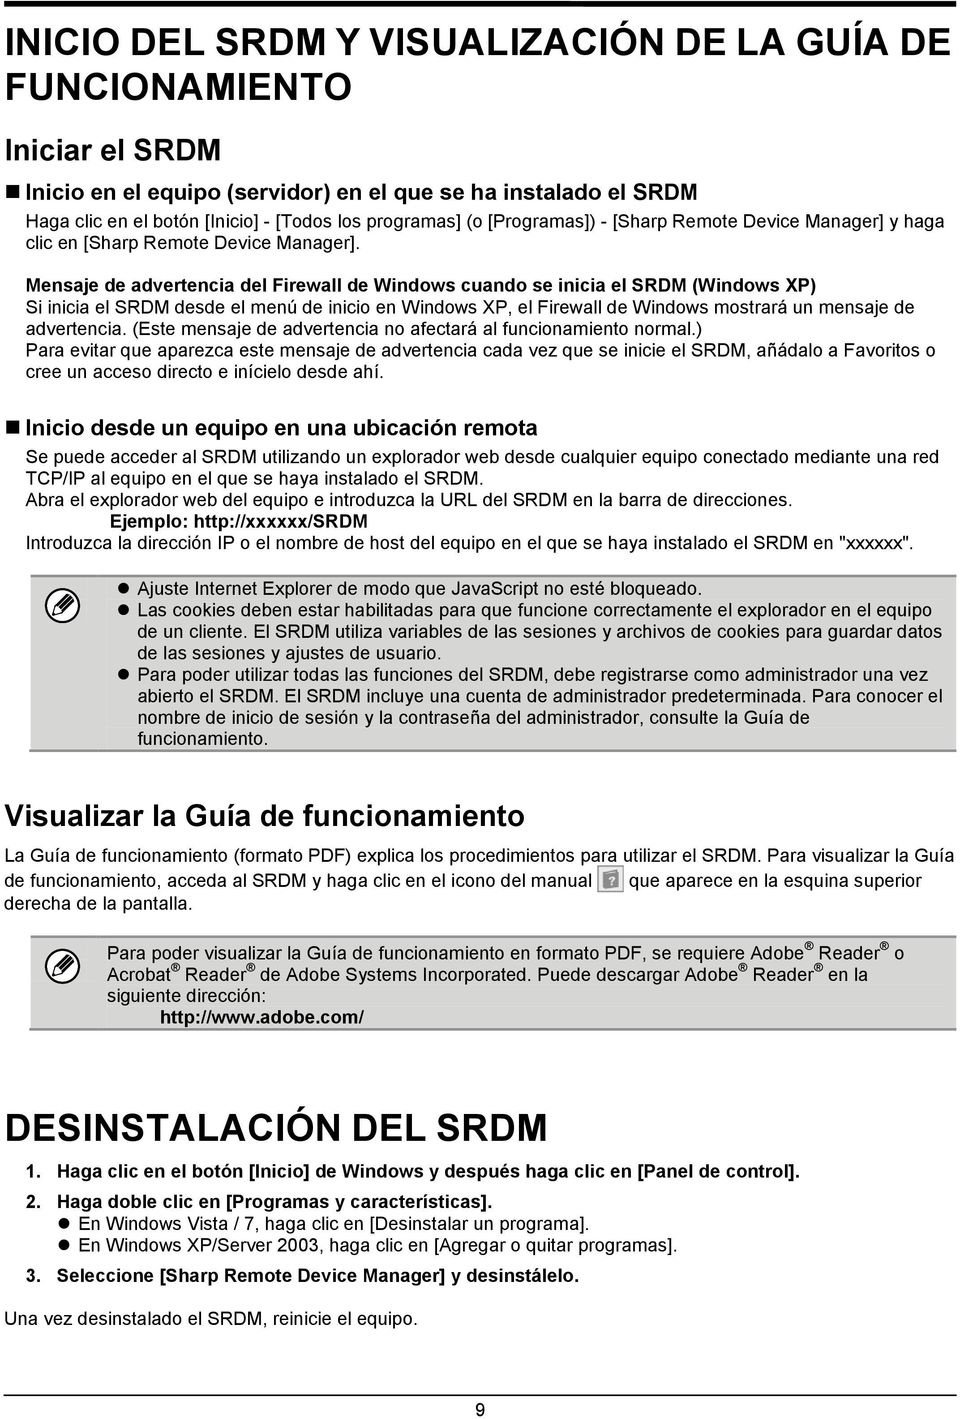 Mensaje de advertencia del Firewall de Windows cuando se inicia el SRDM (Windows XP) Si inicia el SRDM desde el menú de inicio en Windows XP, el Firewall de Windows mostrará un mensaje de advertencia.